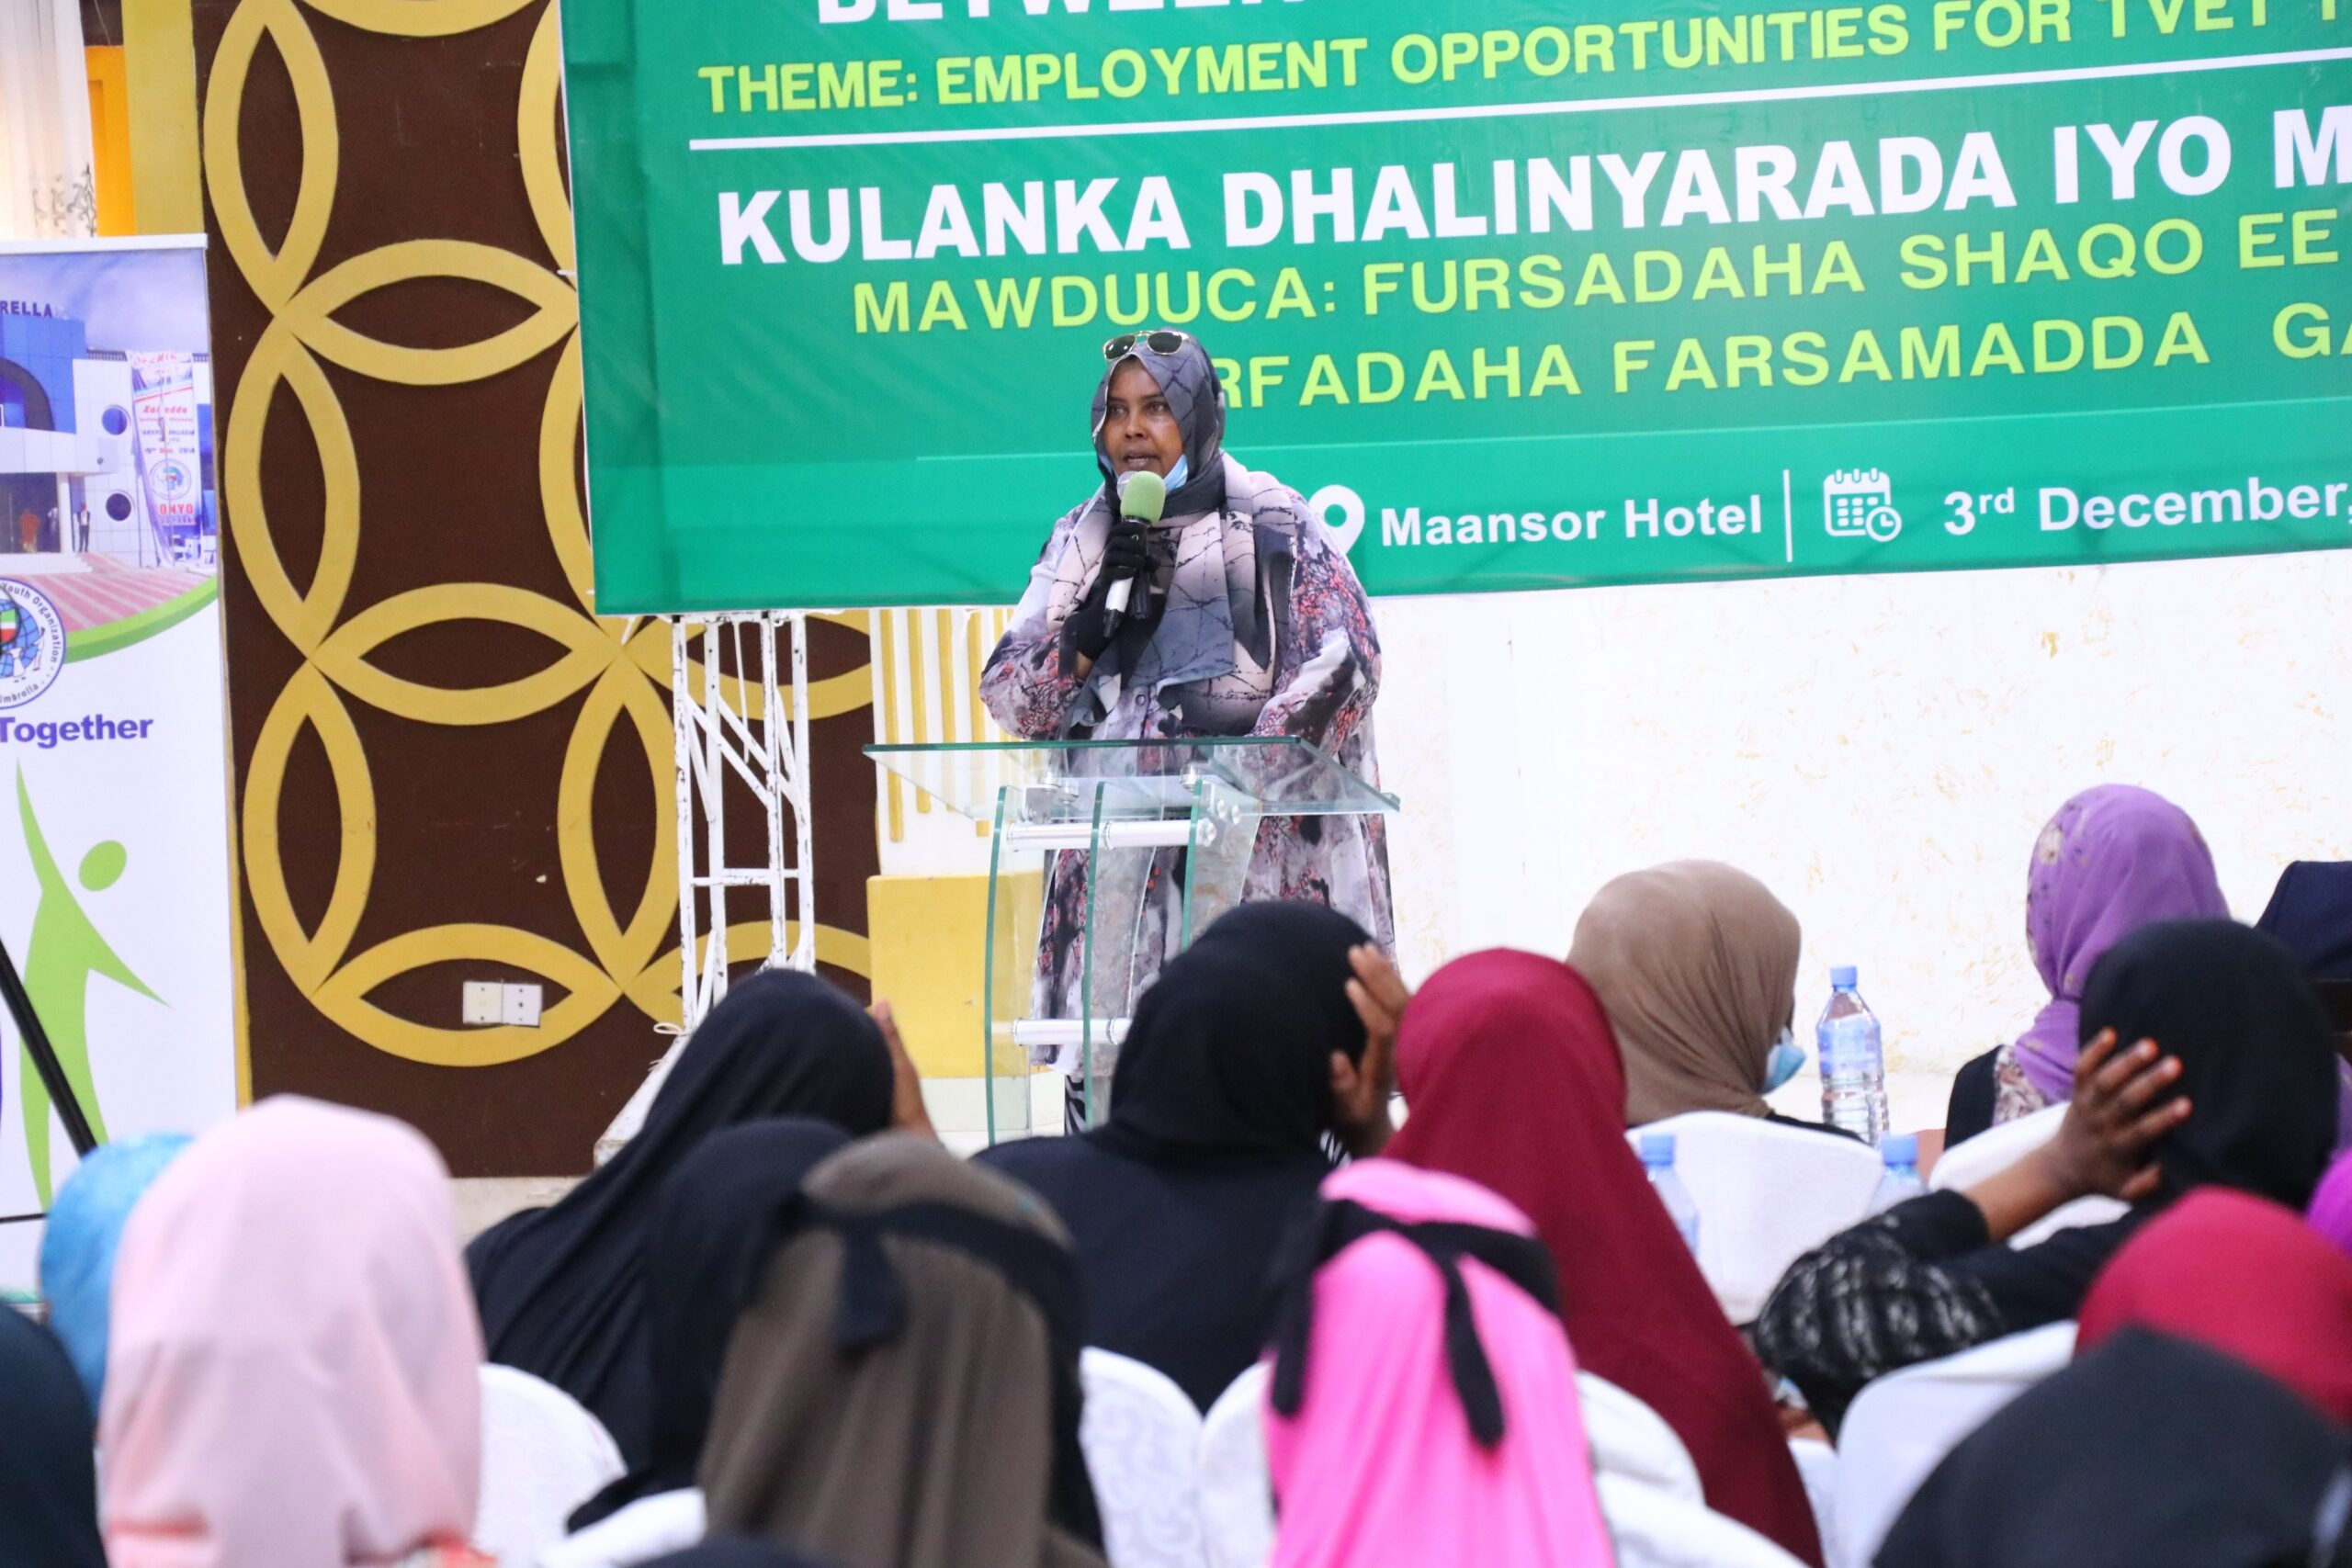 Somaliland Minister of Employment and Social Affairs, Hinda Ghani,